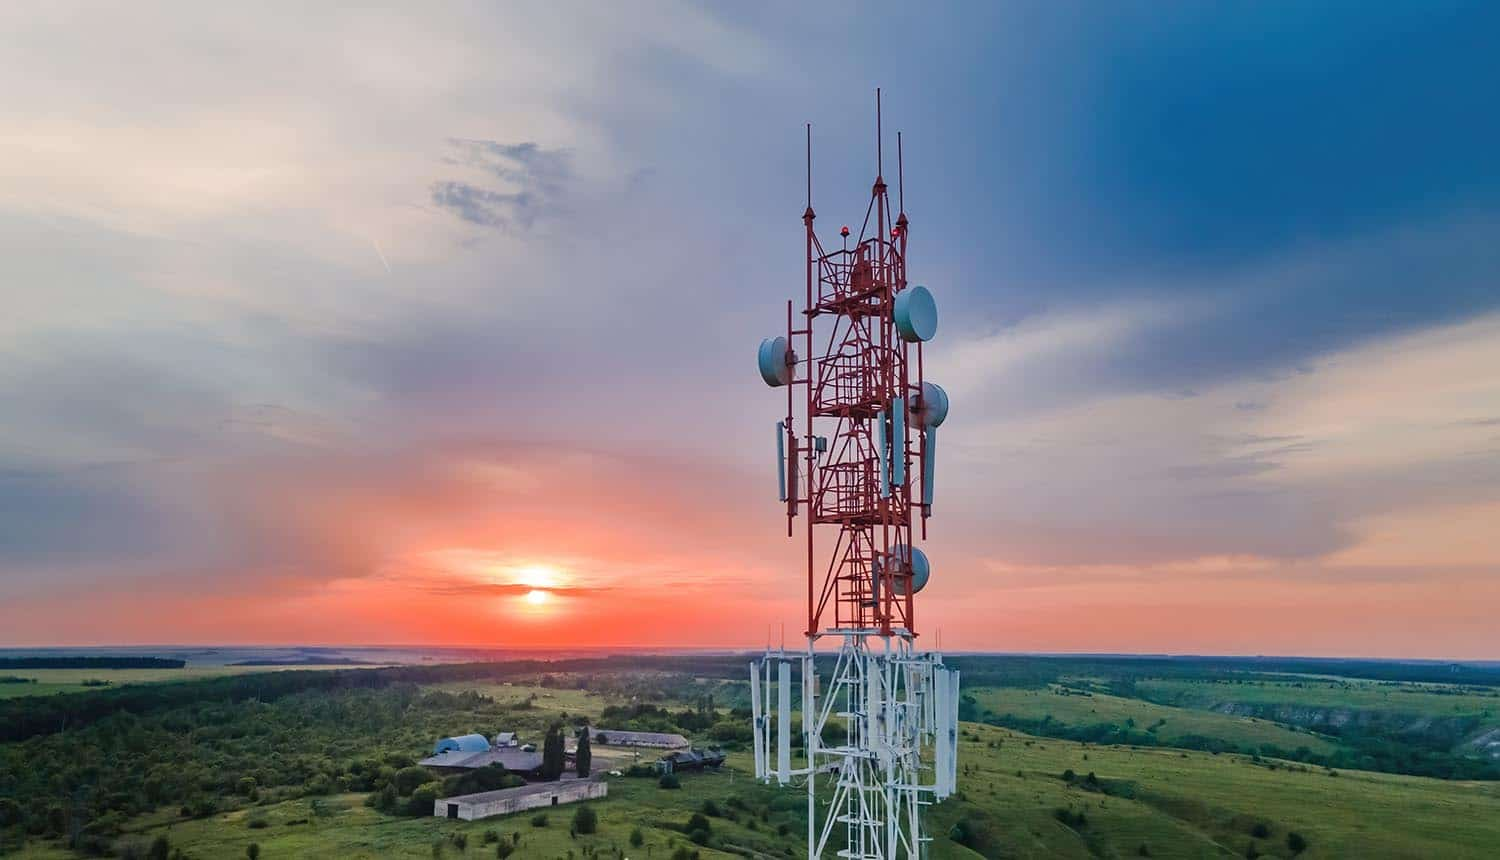 Telecommunication antenna receiver on cell phone tower with 5G showing challenge of legacy signalling protocols